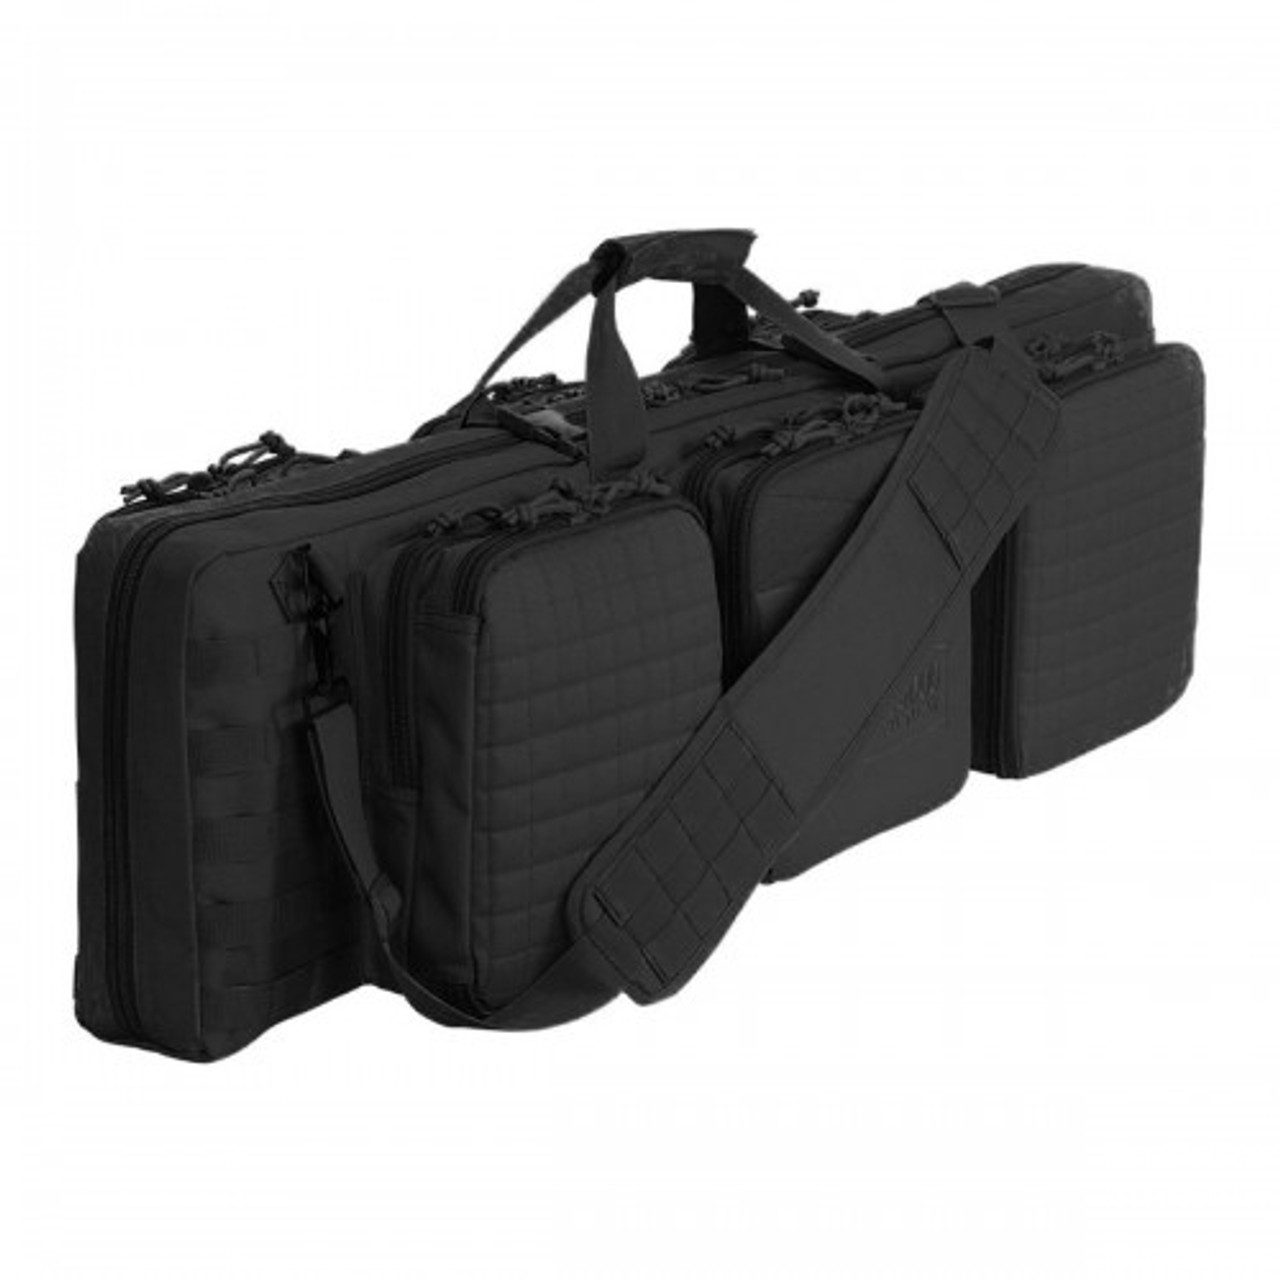 "Voodoo Tactical 15-7618 The Beast 42"" Deluxe Double Sided Rifle Case"